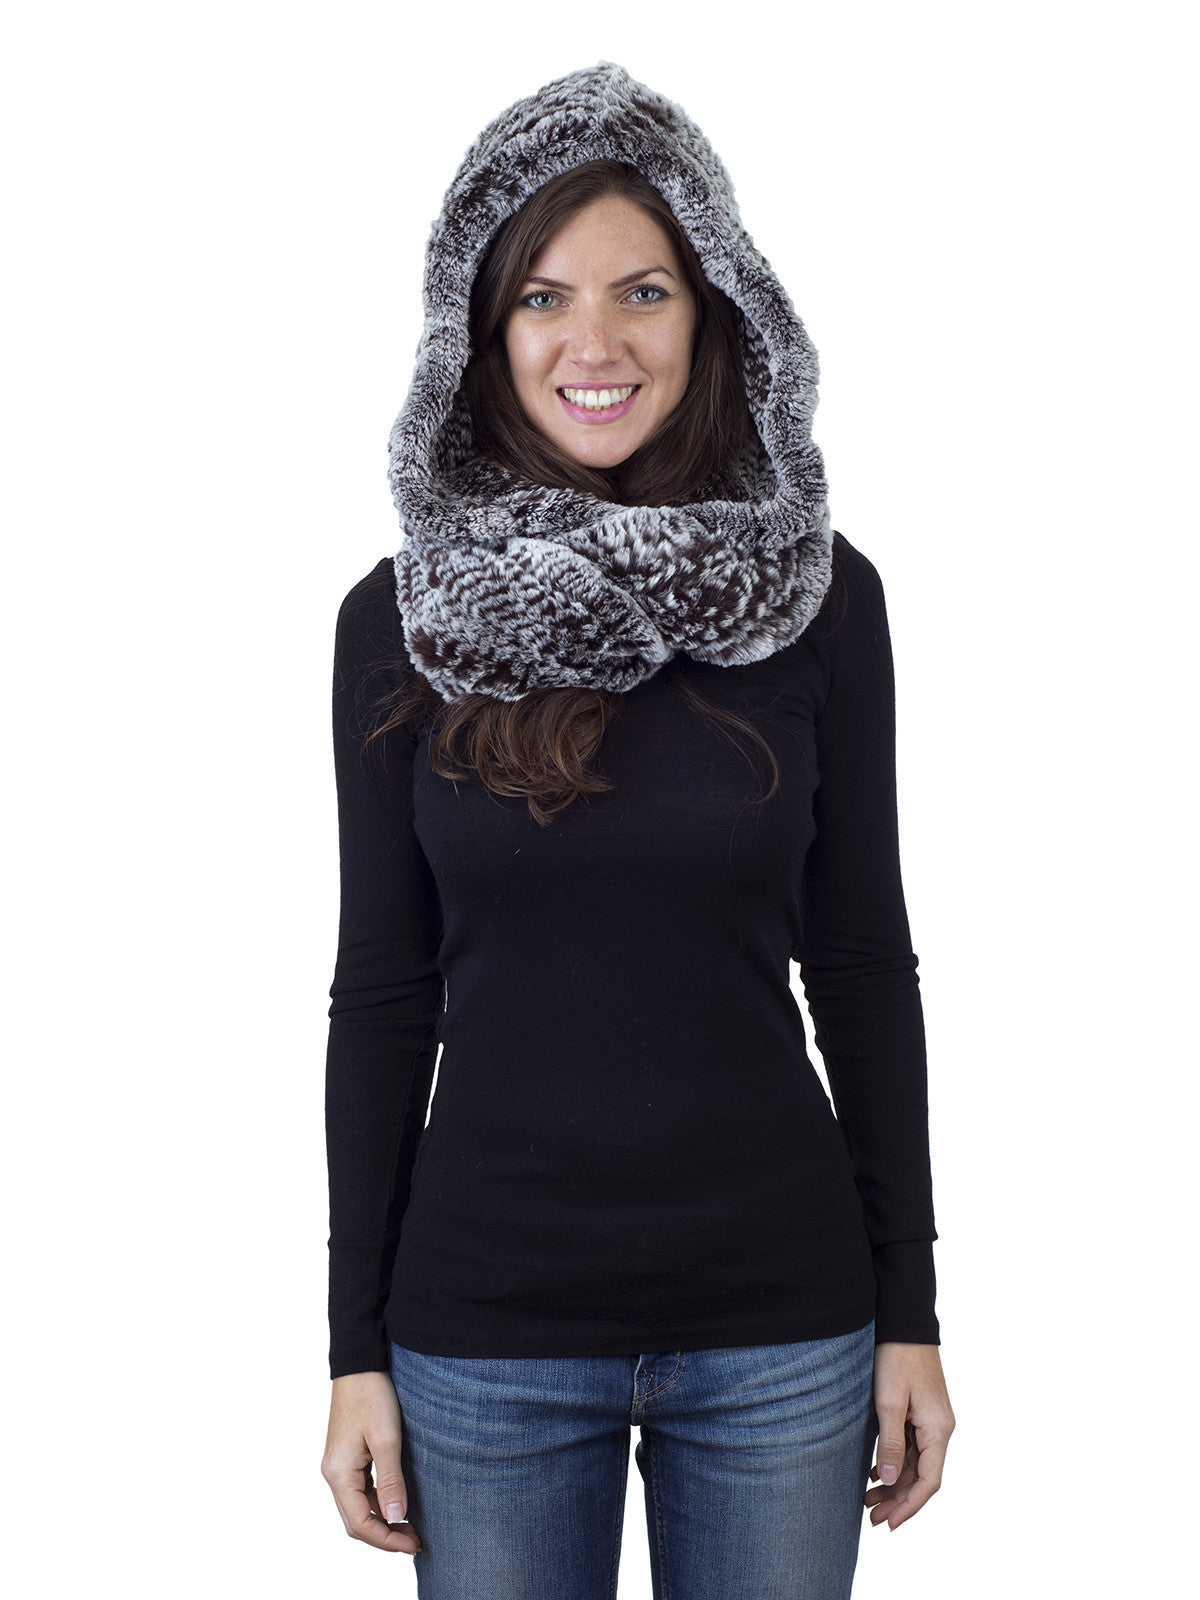 Brown Frost Rex Rabbit Hood with Wide Infinity Scarf